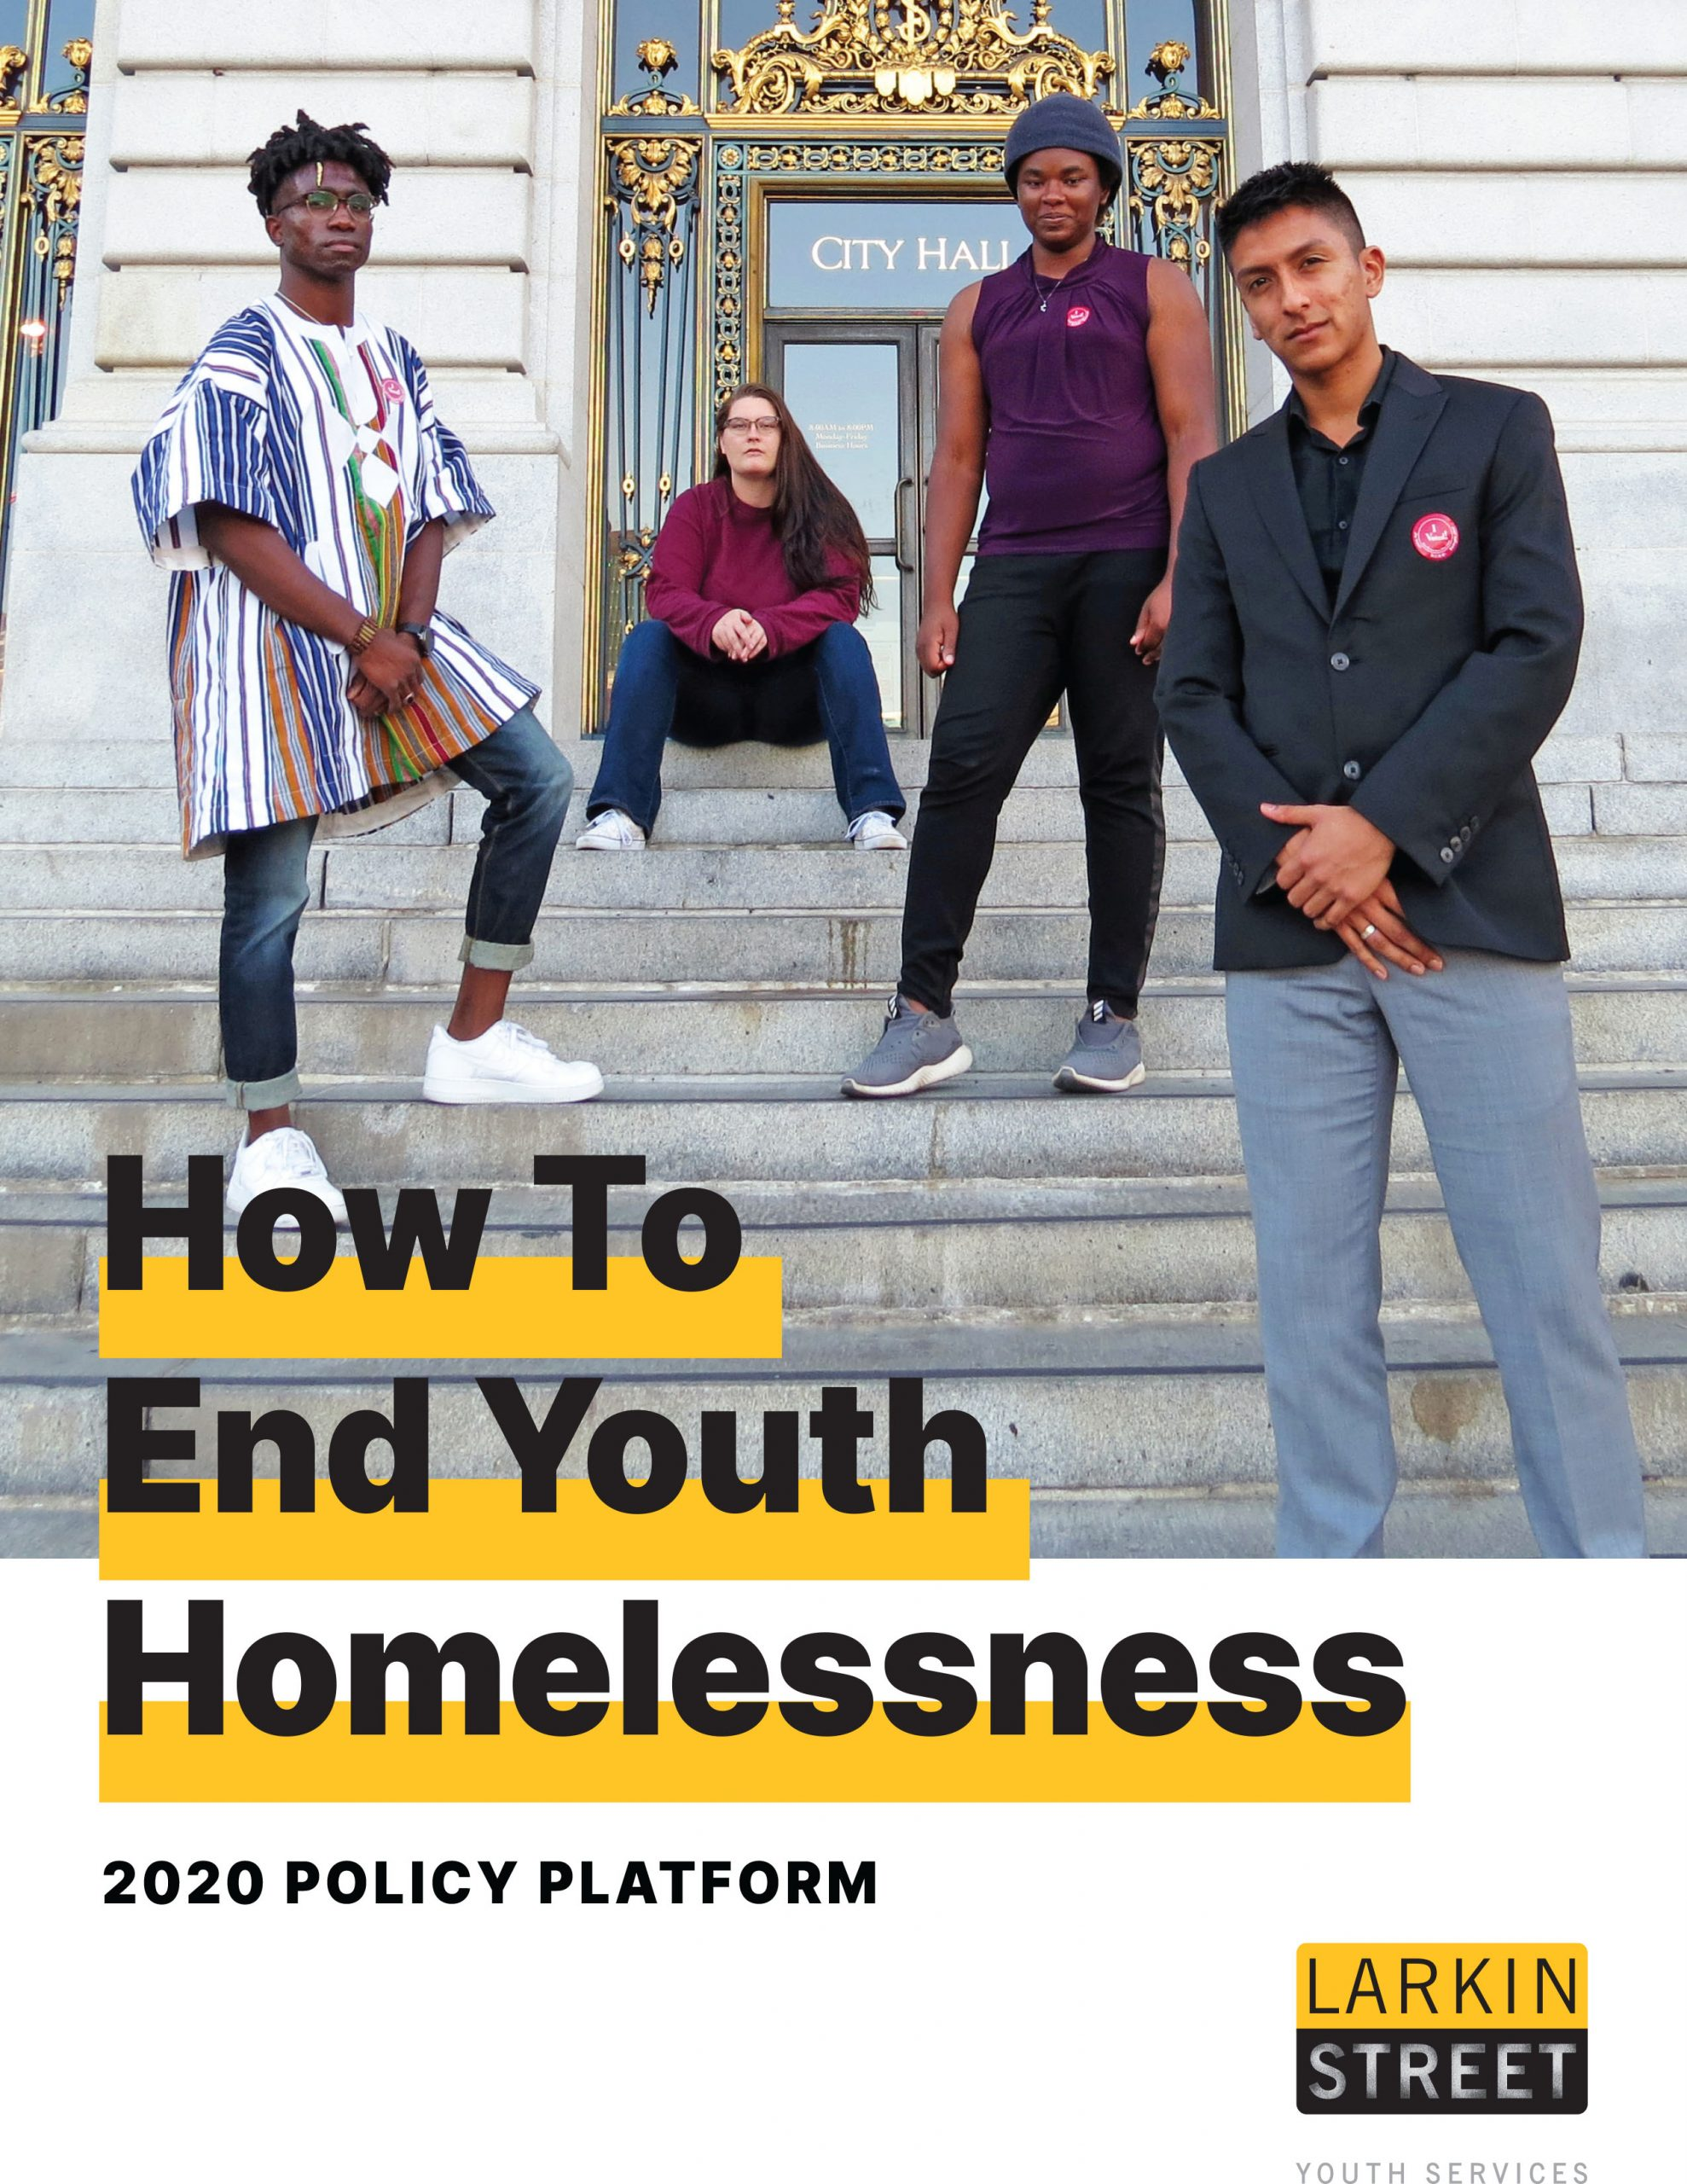 ow to End Youth Homelessness - 2020 Policy Platform